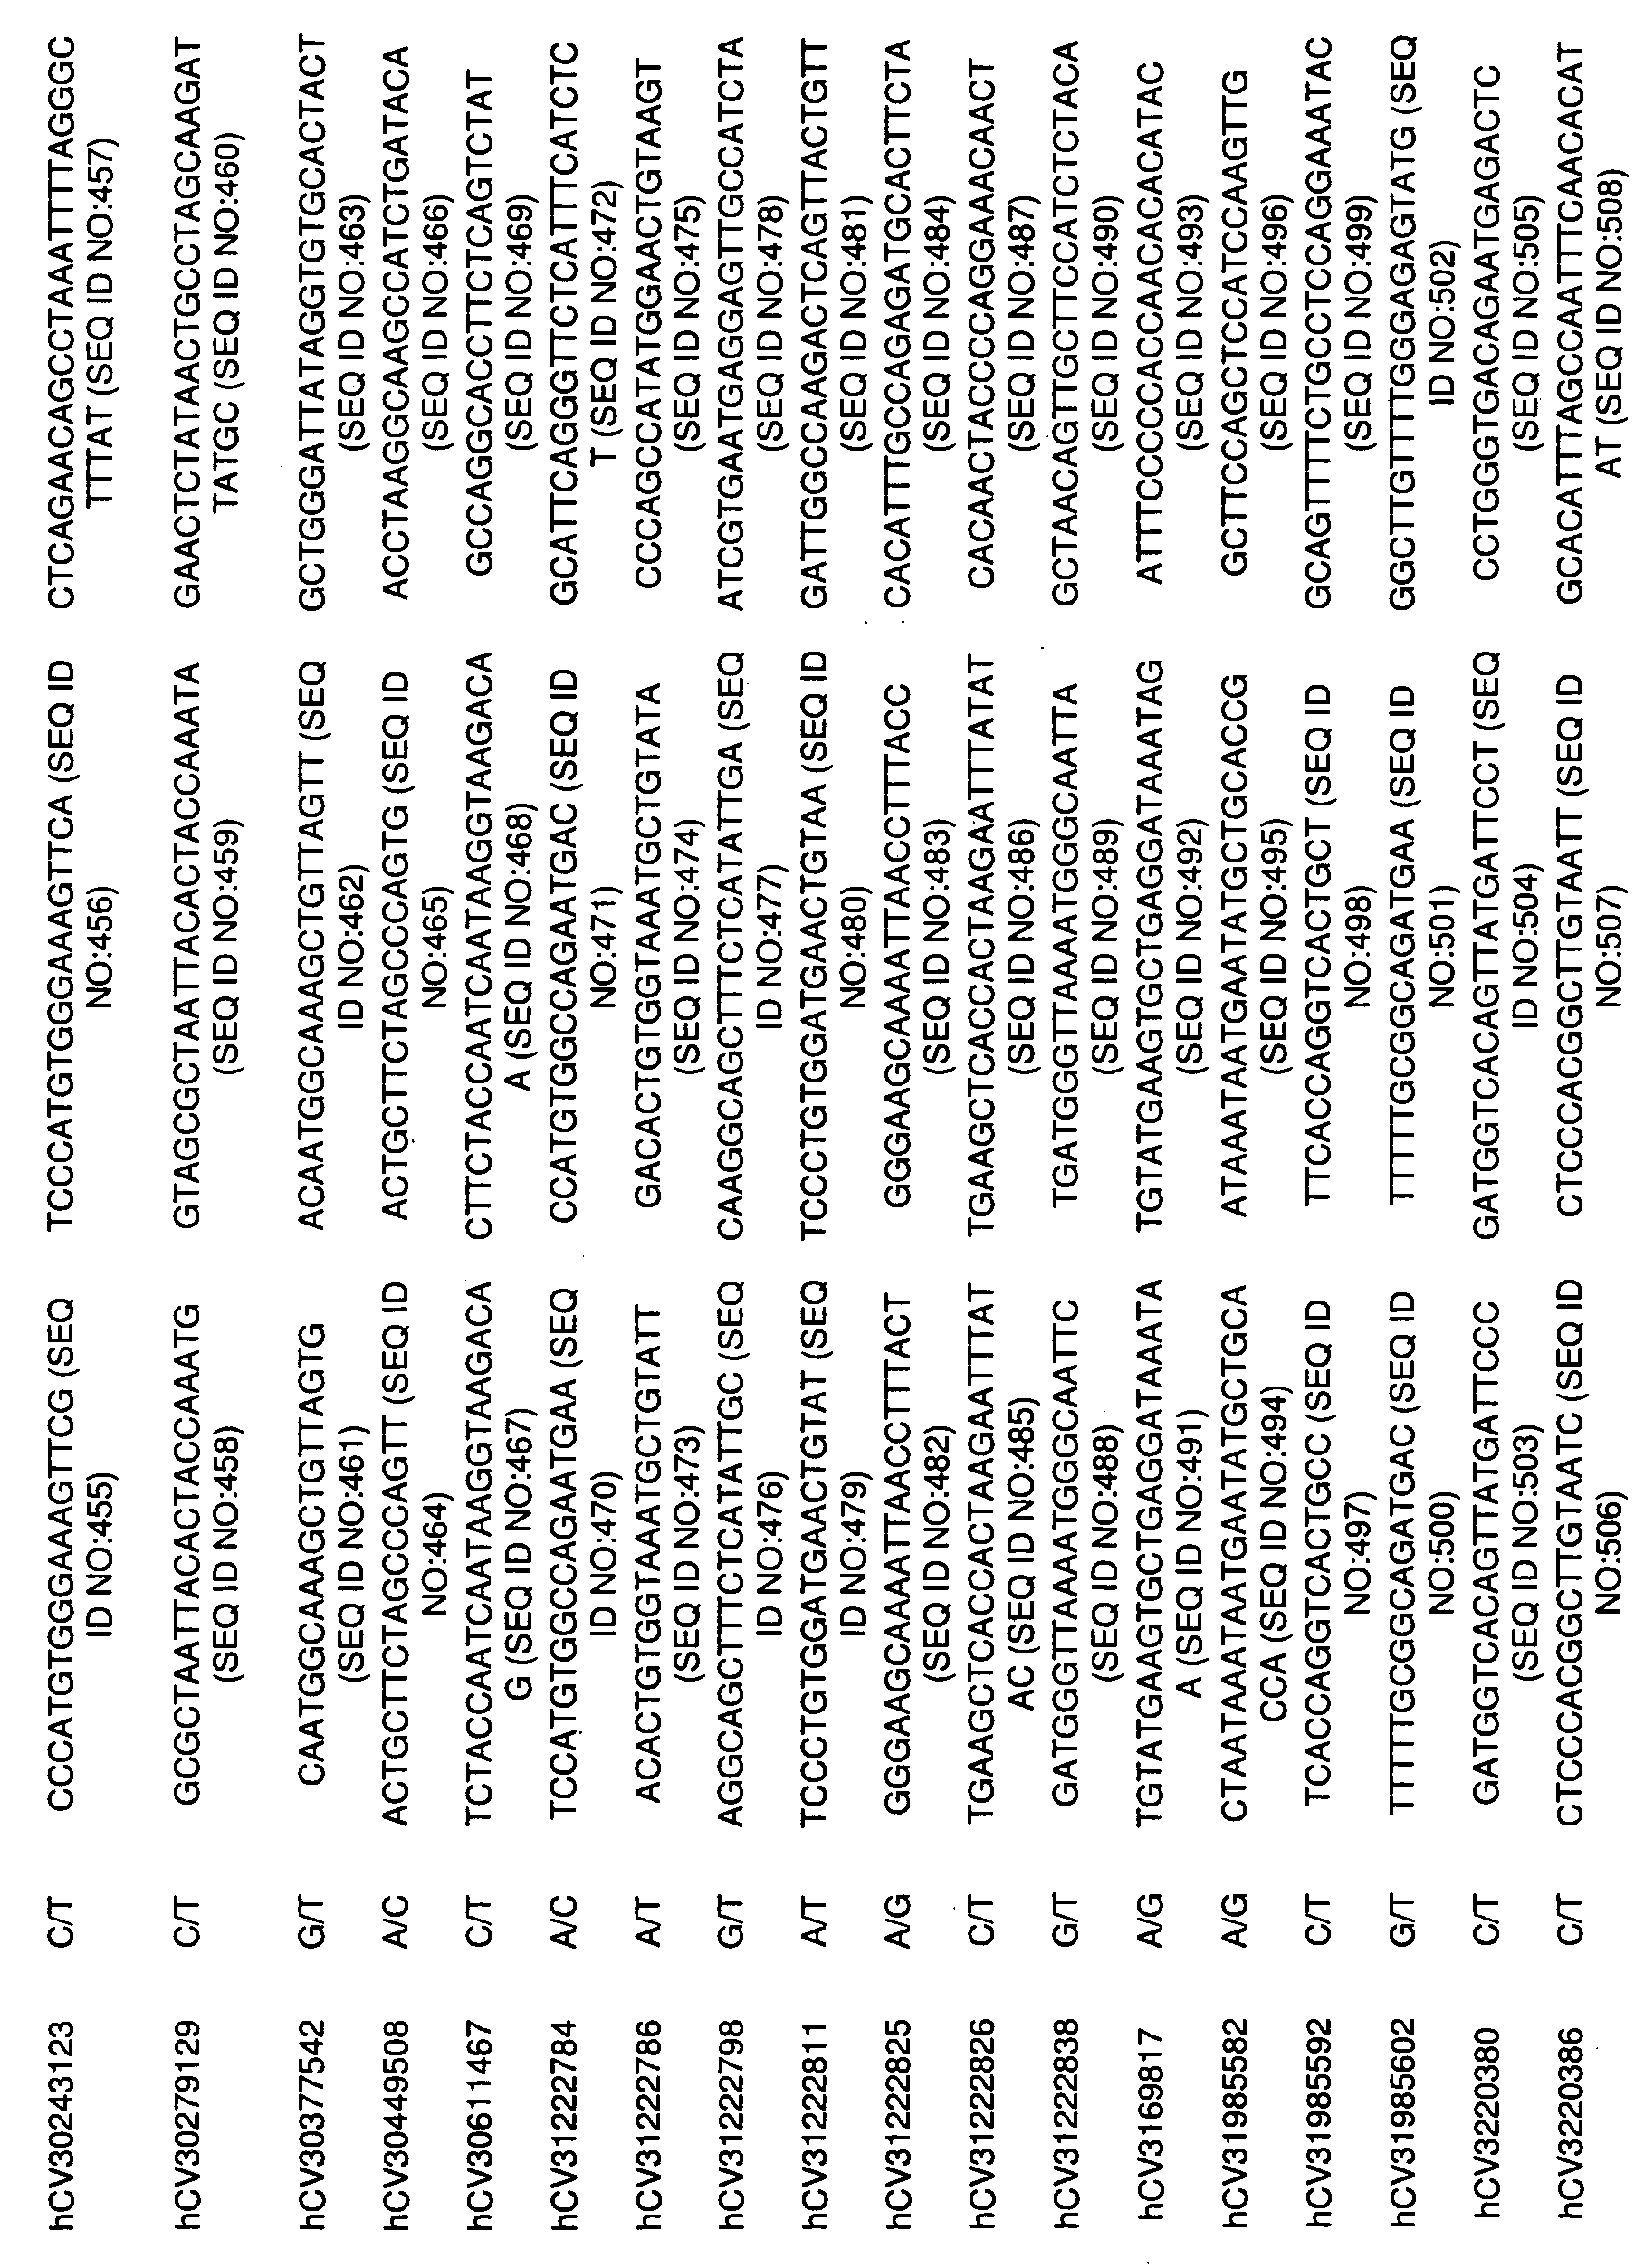 WO2010002891A1 - Genetic polymorphisms associated with